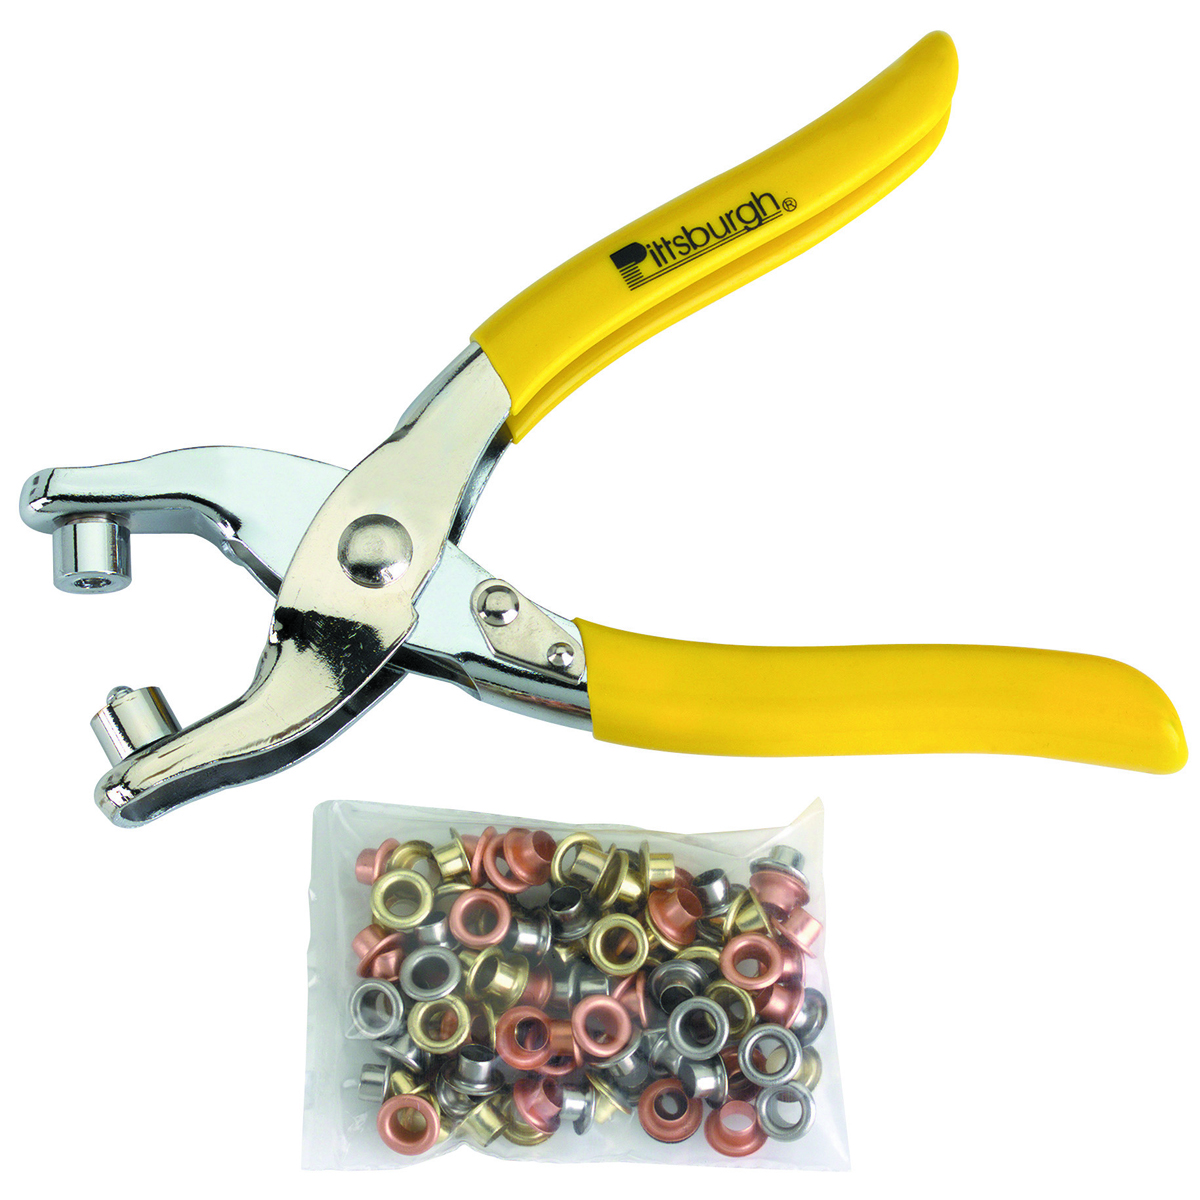 Grommet Pliers With 100 Grommets